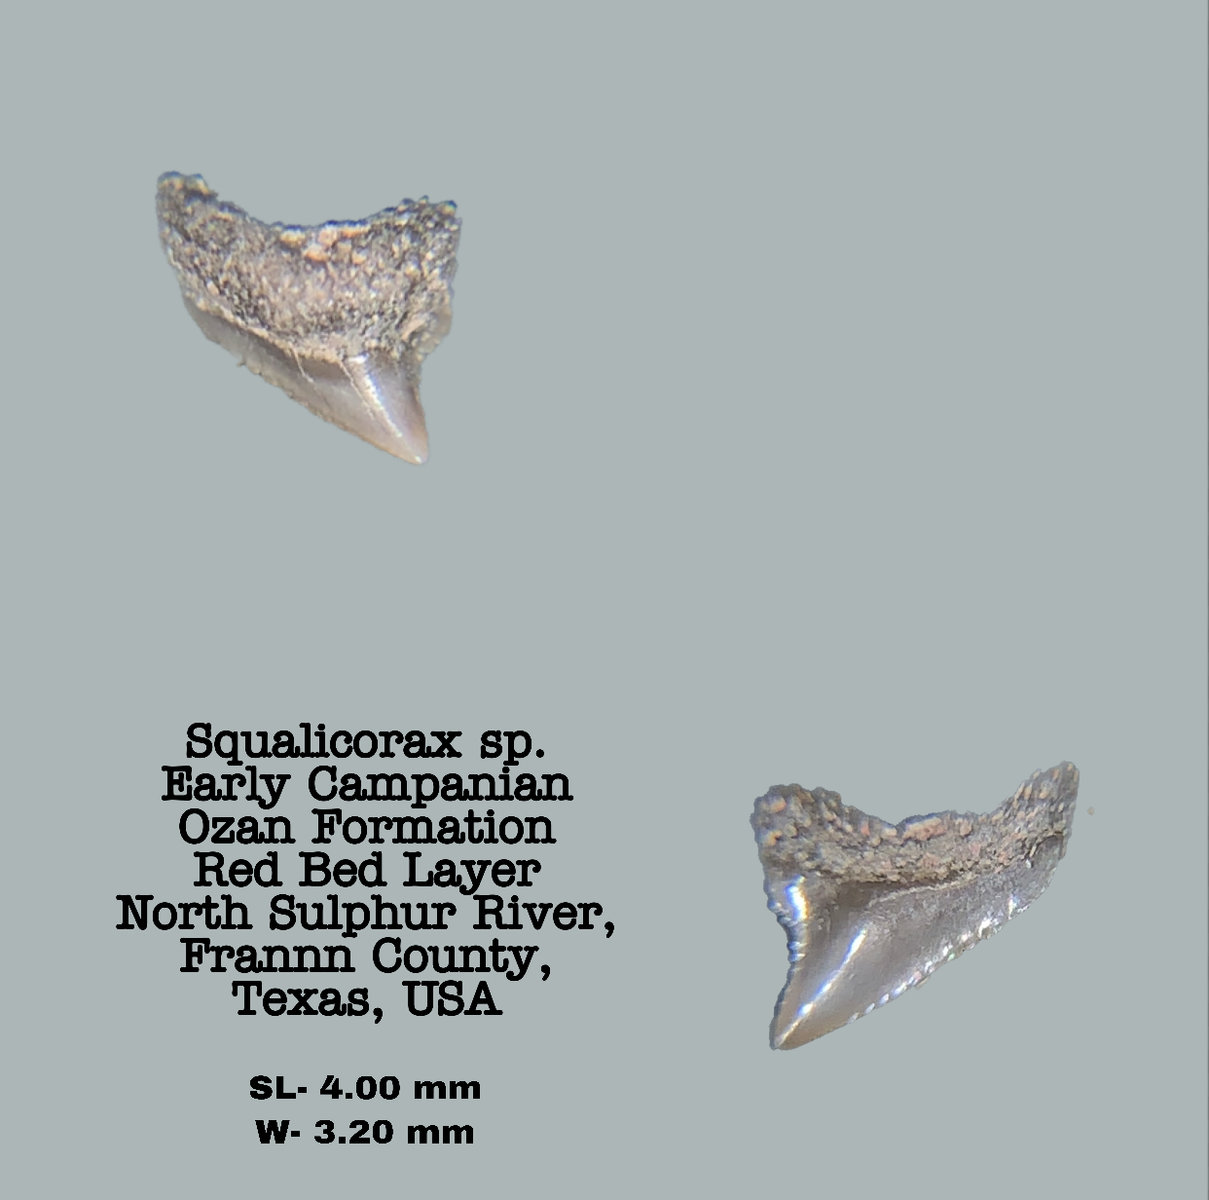 Squalicorax sp.